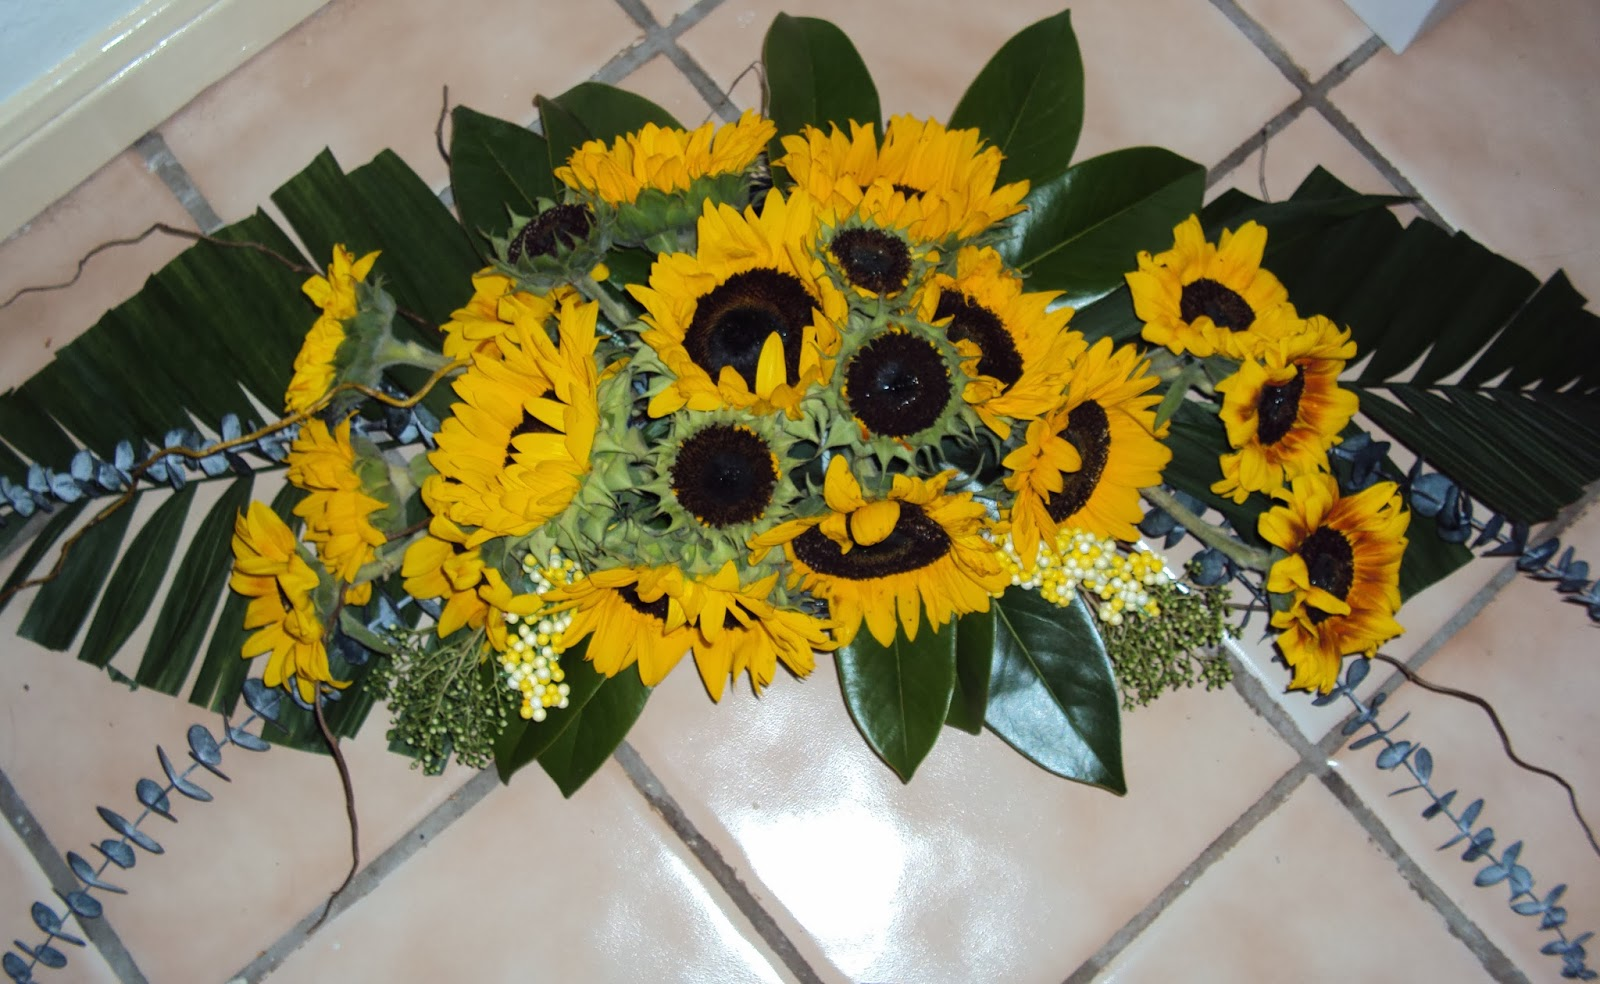 Floral Arrangement Sunflowers And Other Yellow Flowers The Art